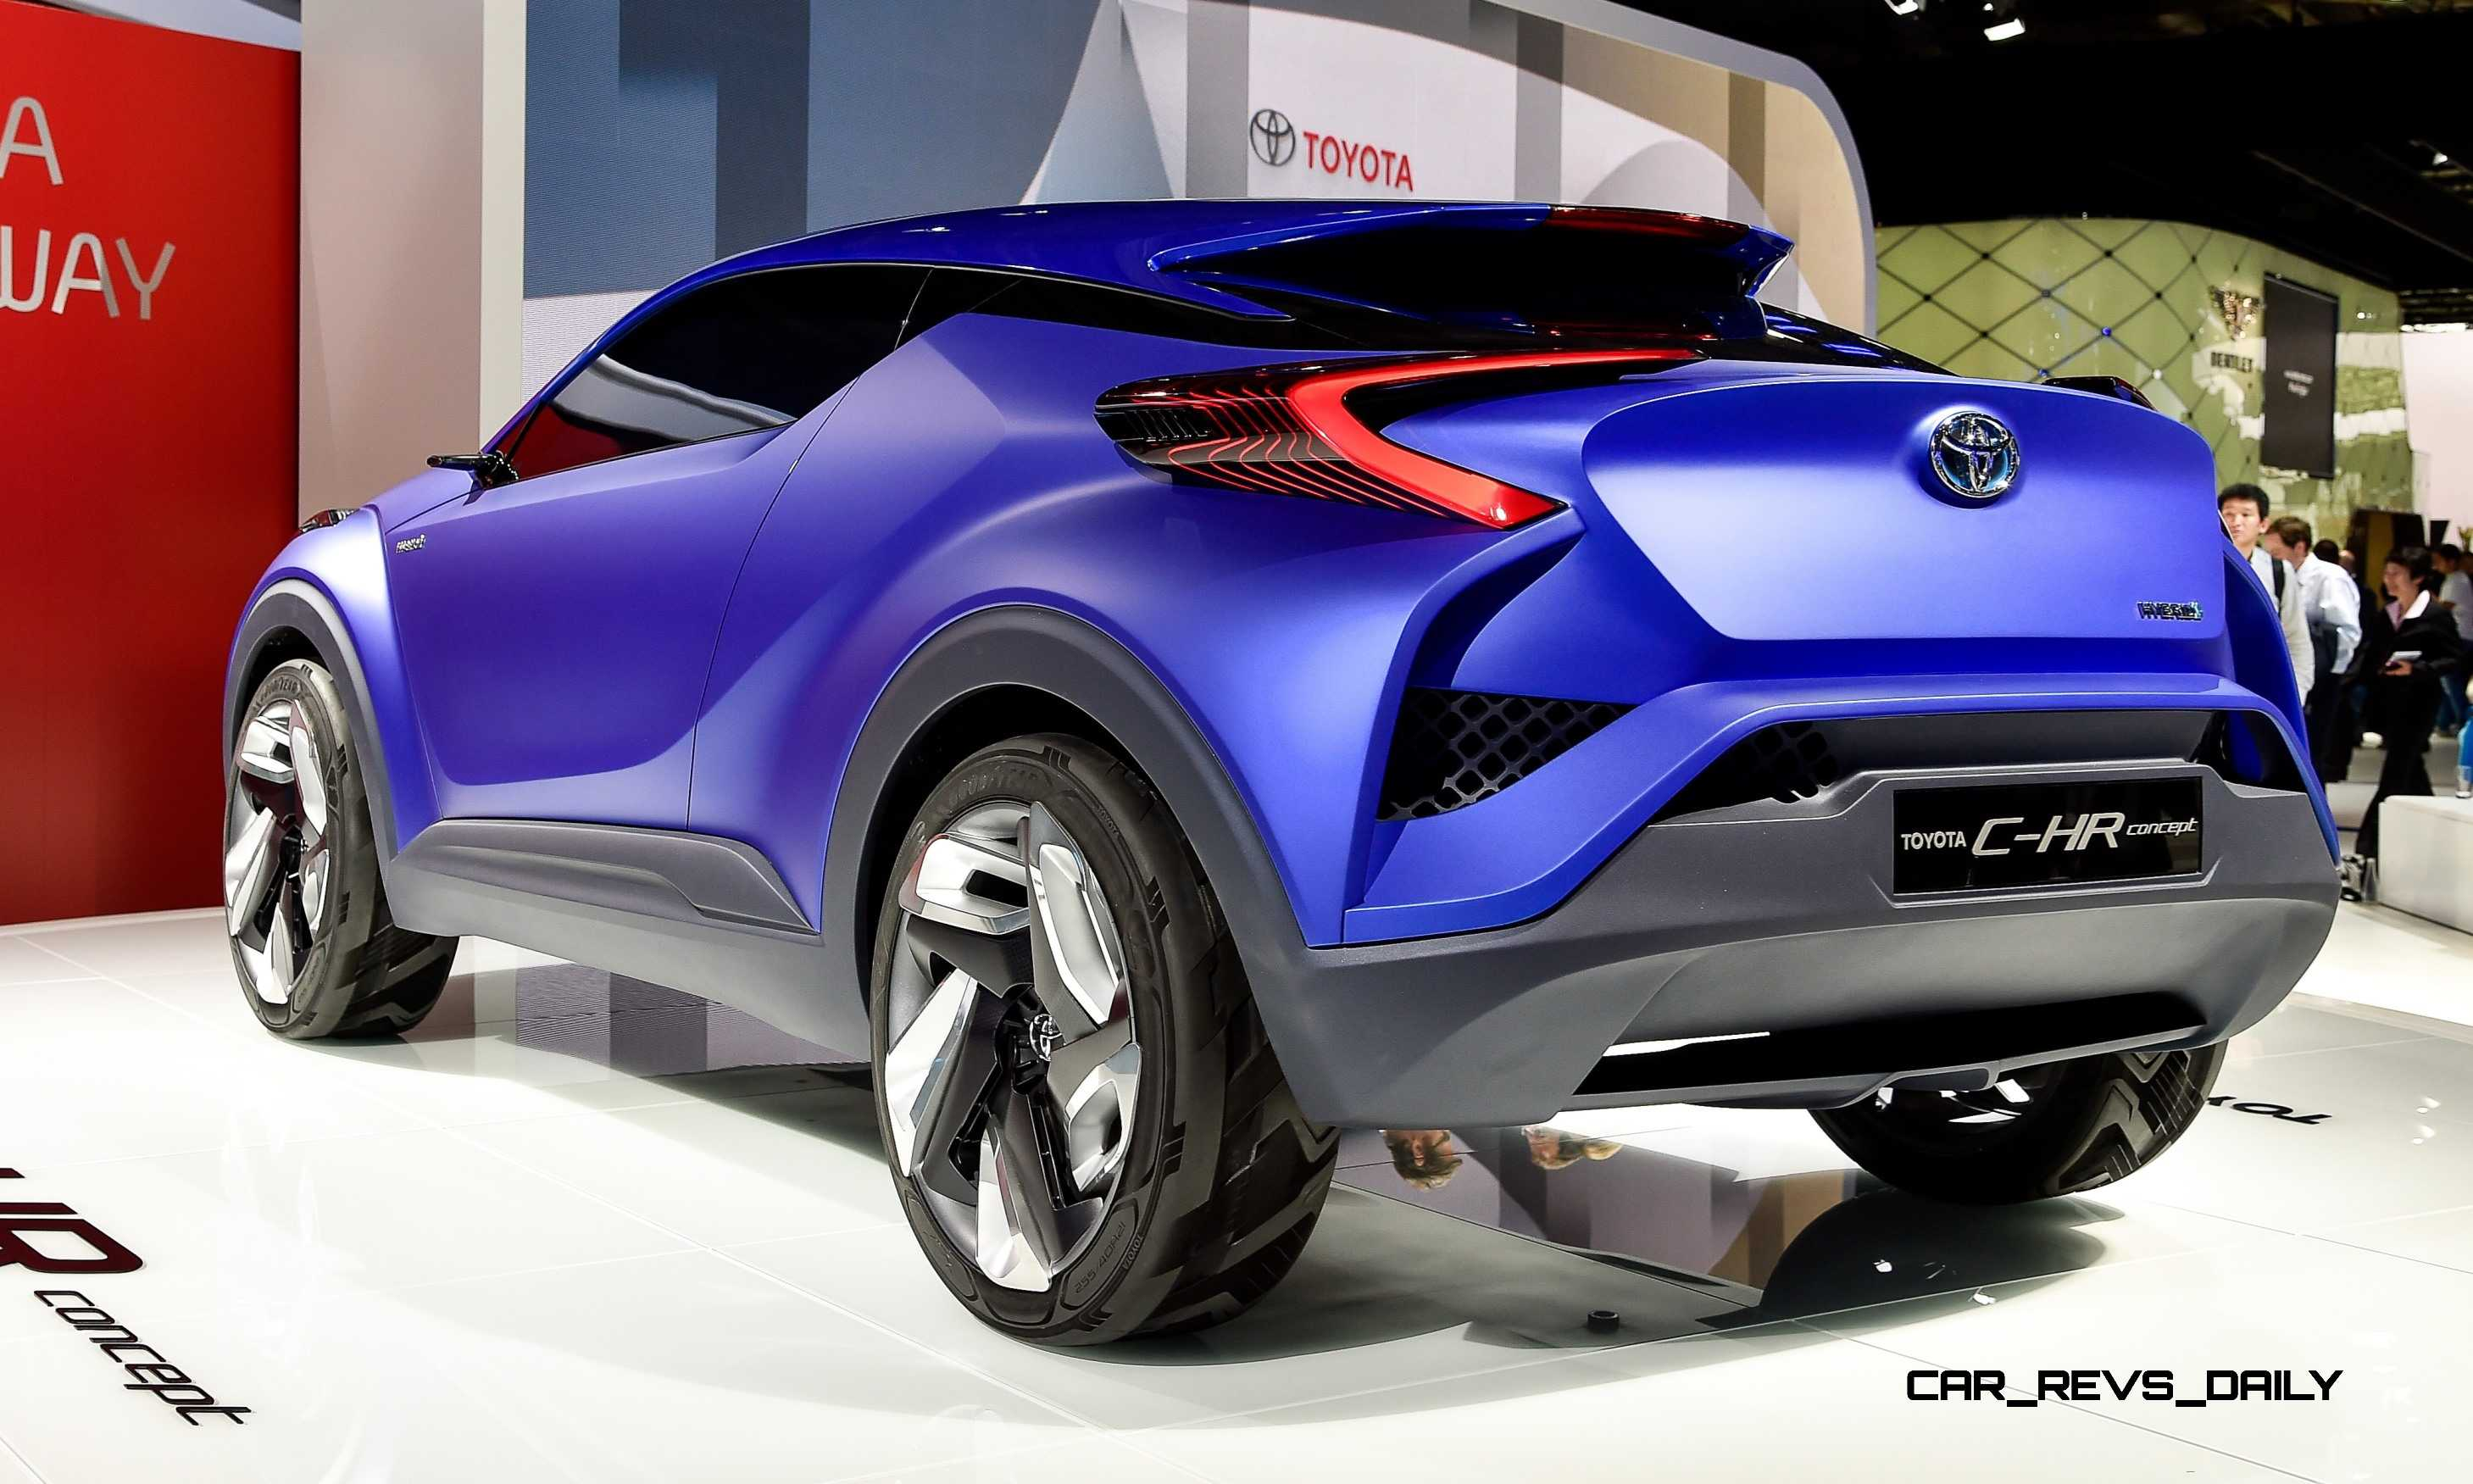 University Of Toyota >> Update1 With 30 New Photos - 2014 Toyota C-HR Concept